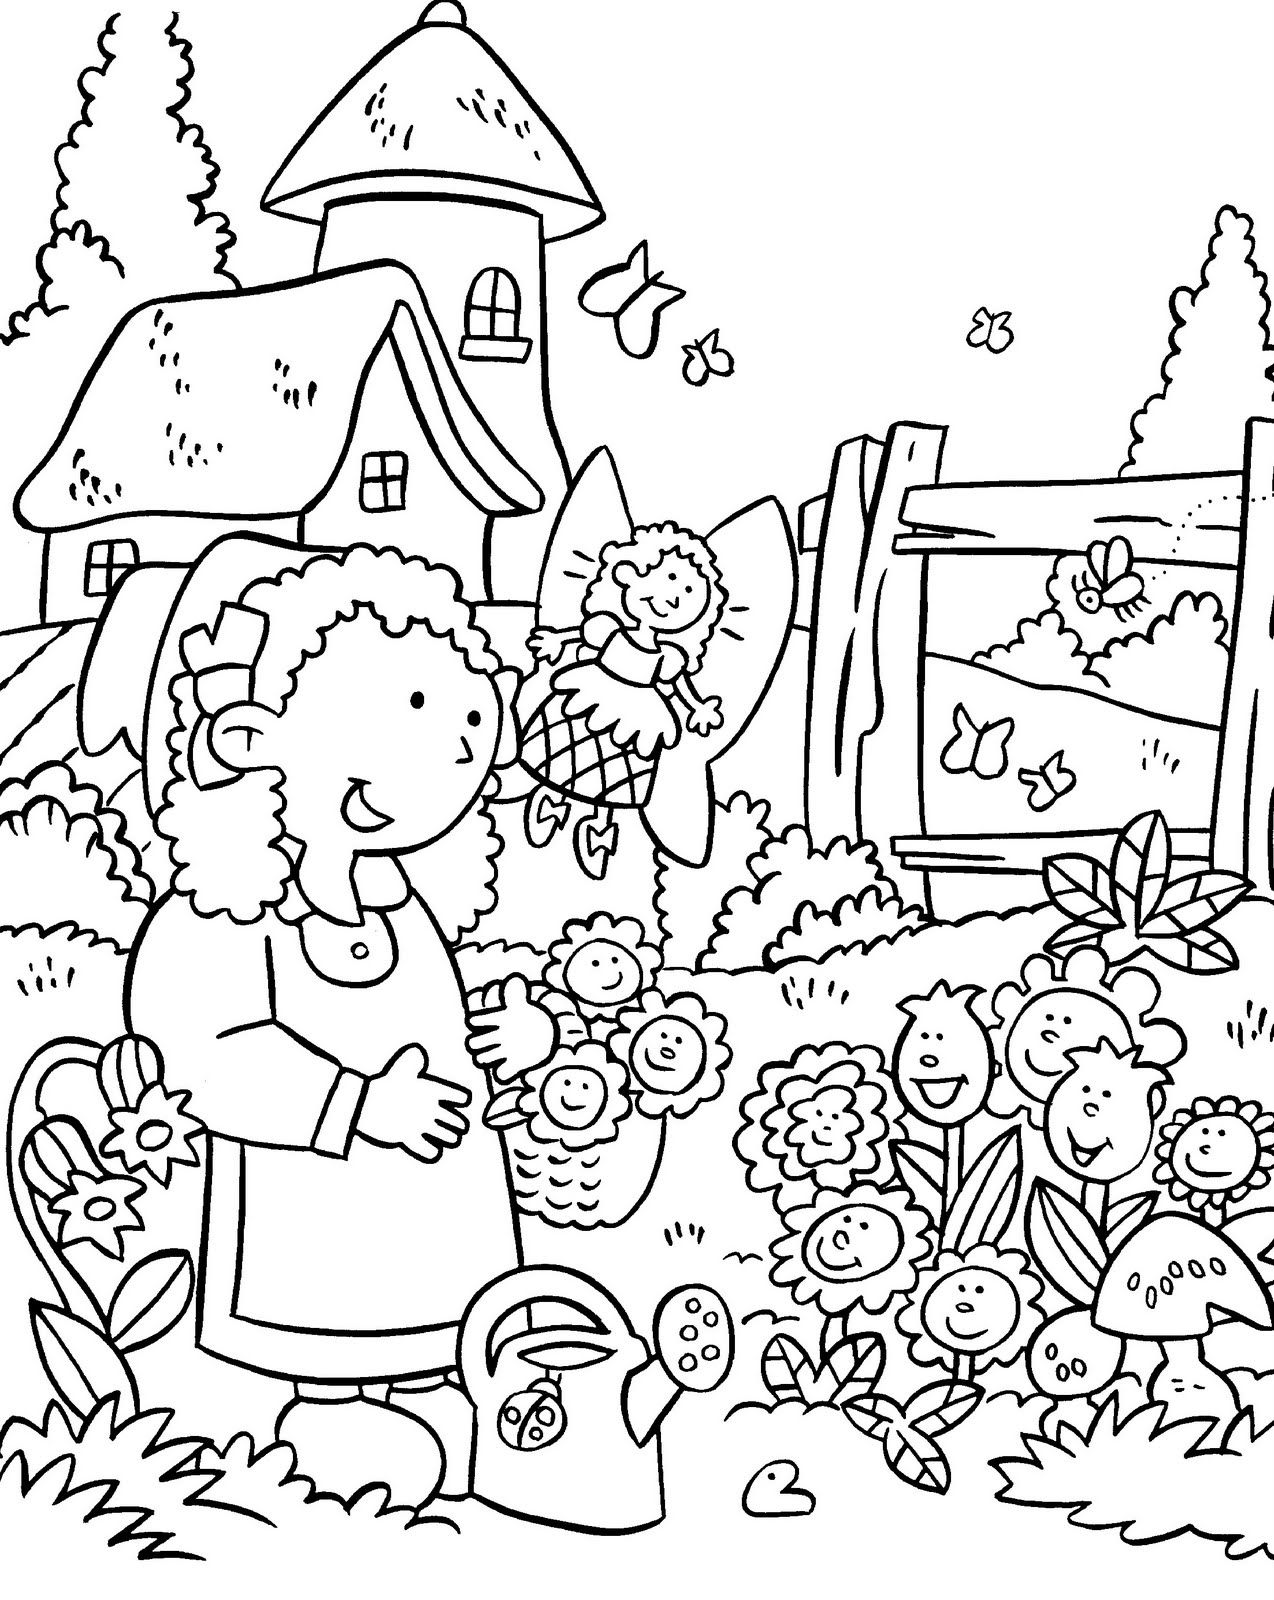 Gardening Coloring Pages Garden Coloring Pages Coloring Pages